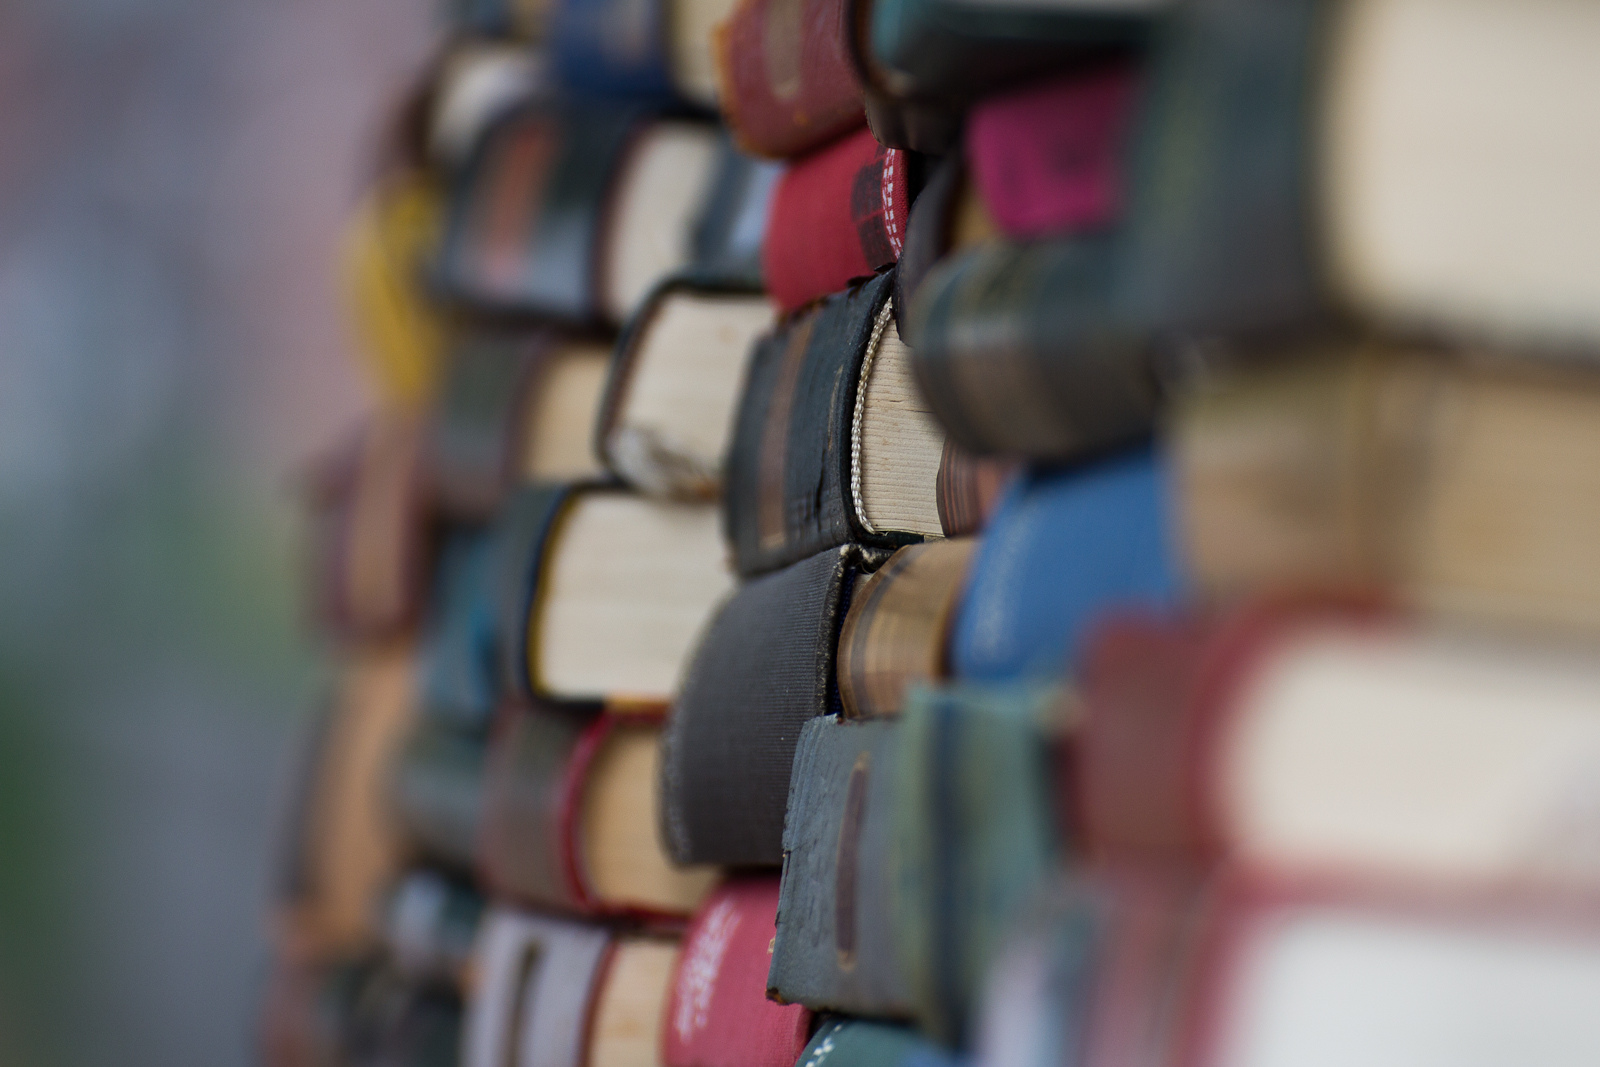 Books, by Pimthida on Flickr, CC licensed